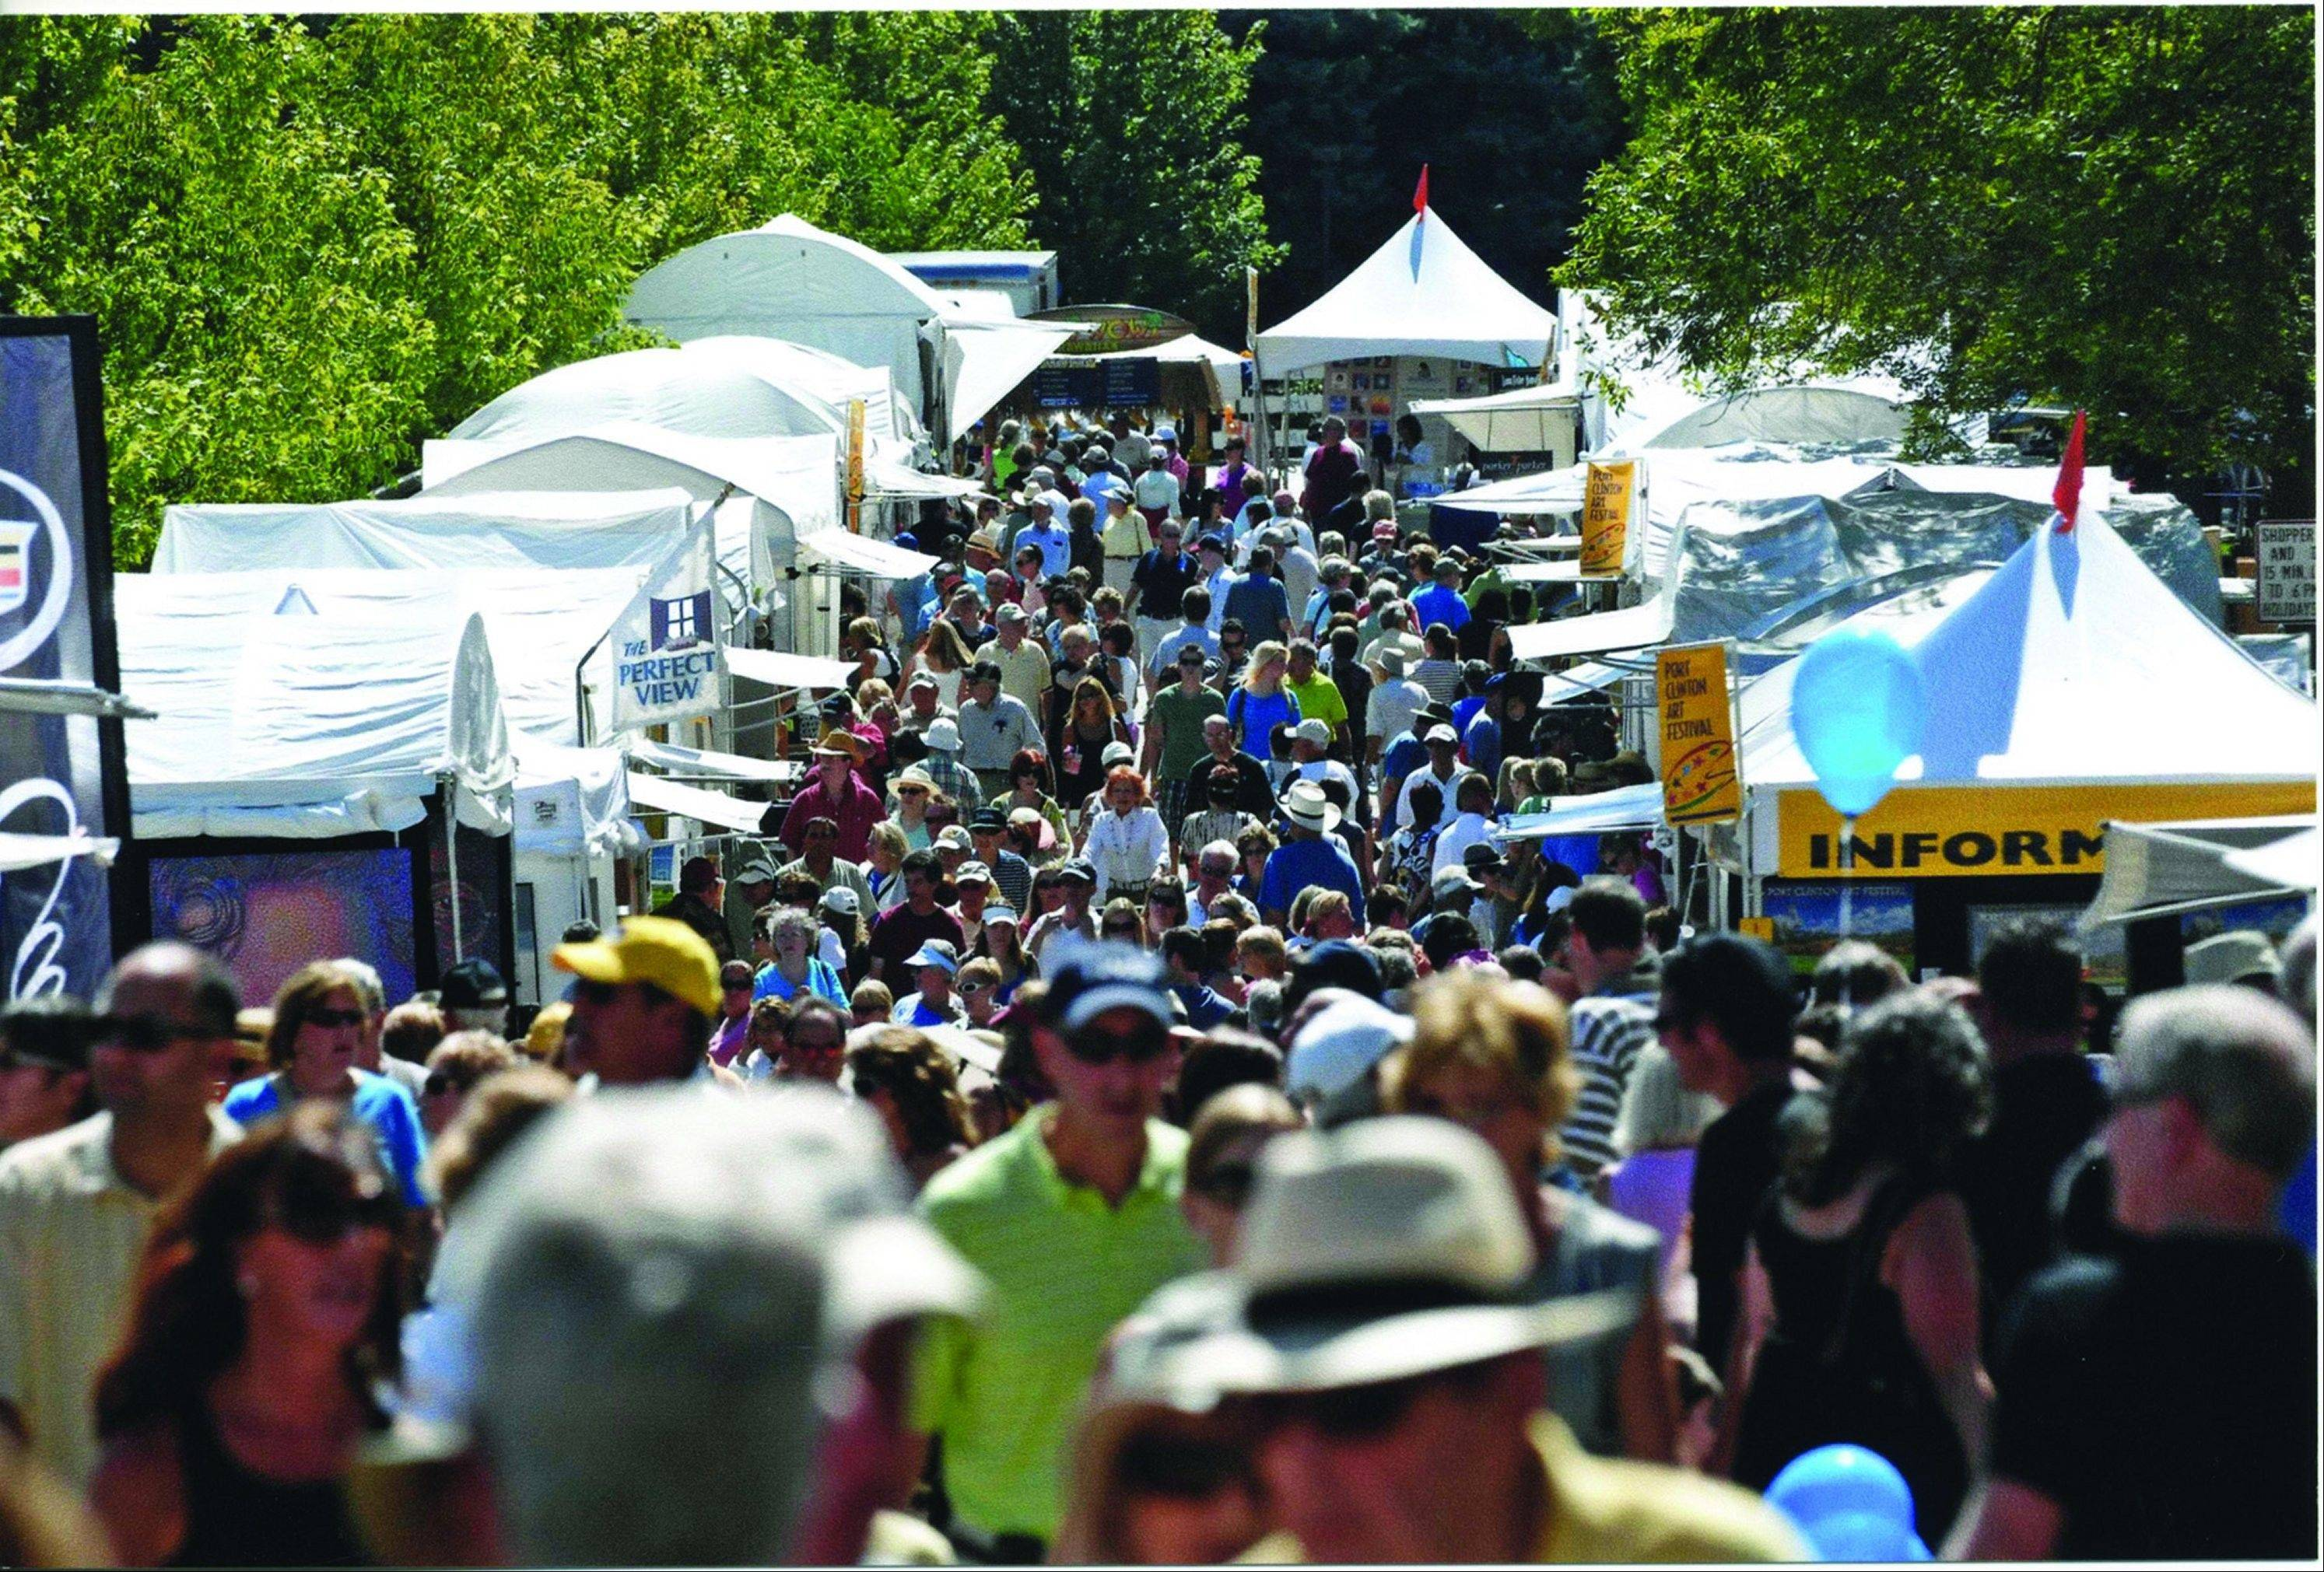 Thousands of art lovers are expected to attend the annual Port Clinton Art Festival this weekend in downtown Highland Park.